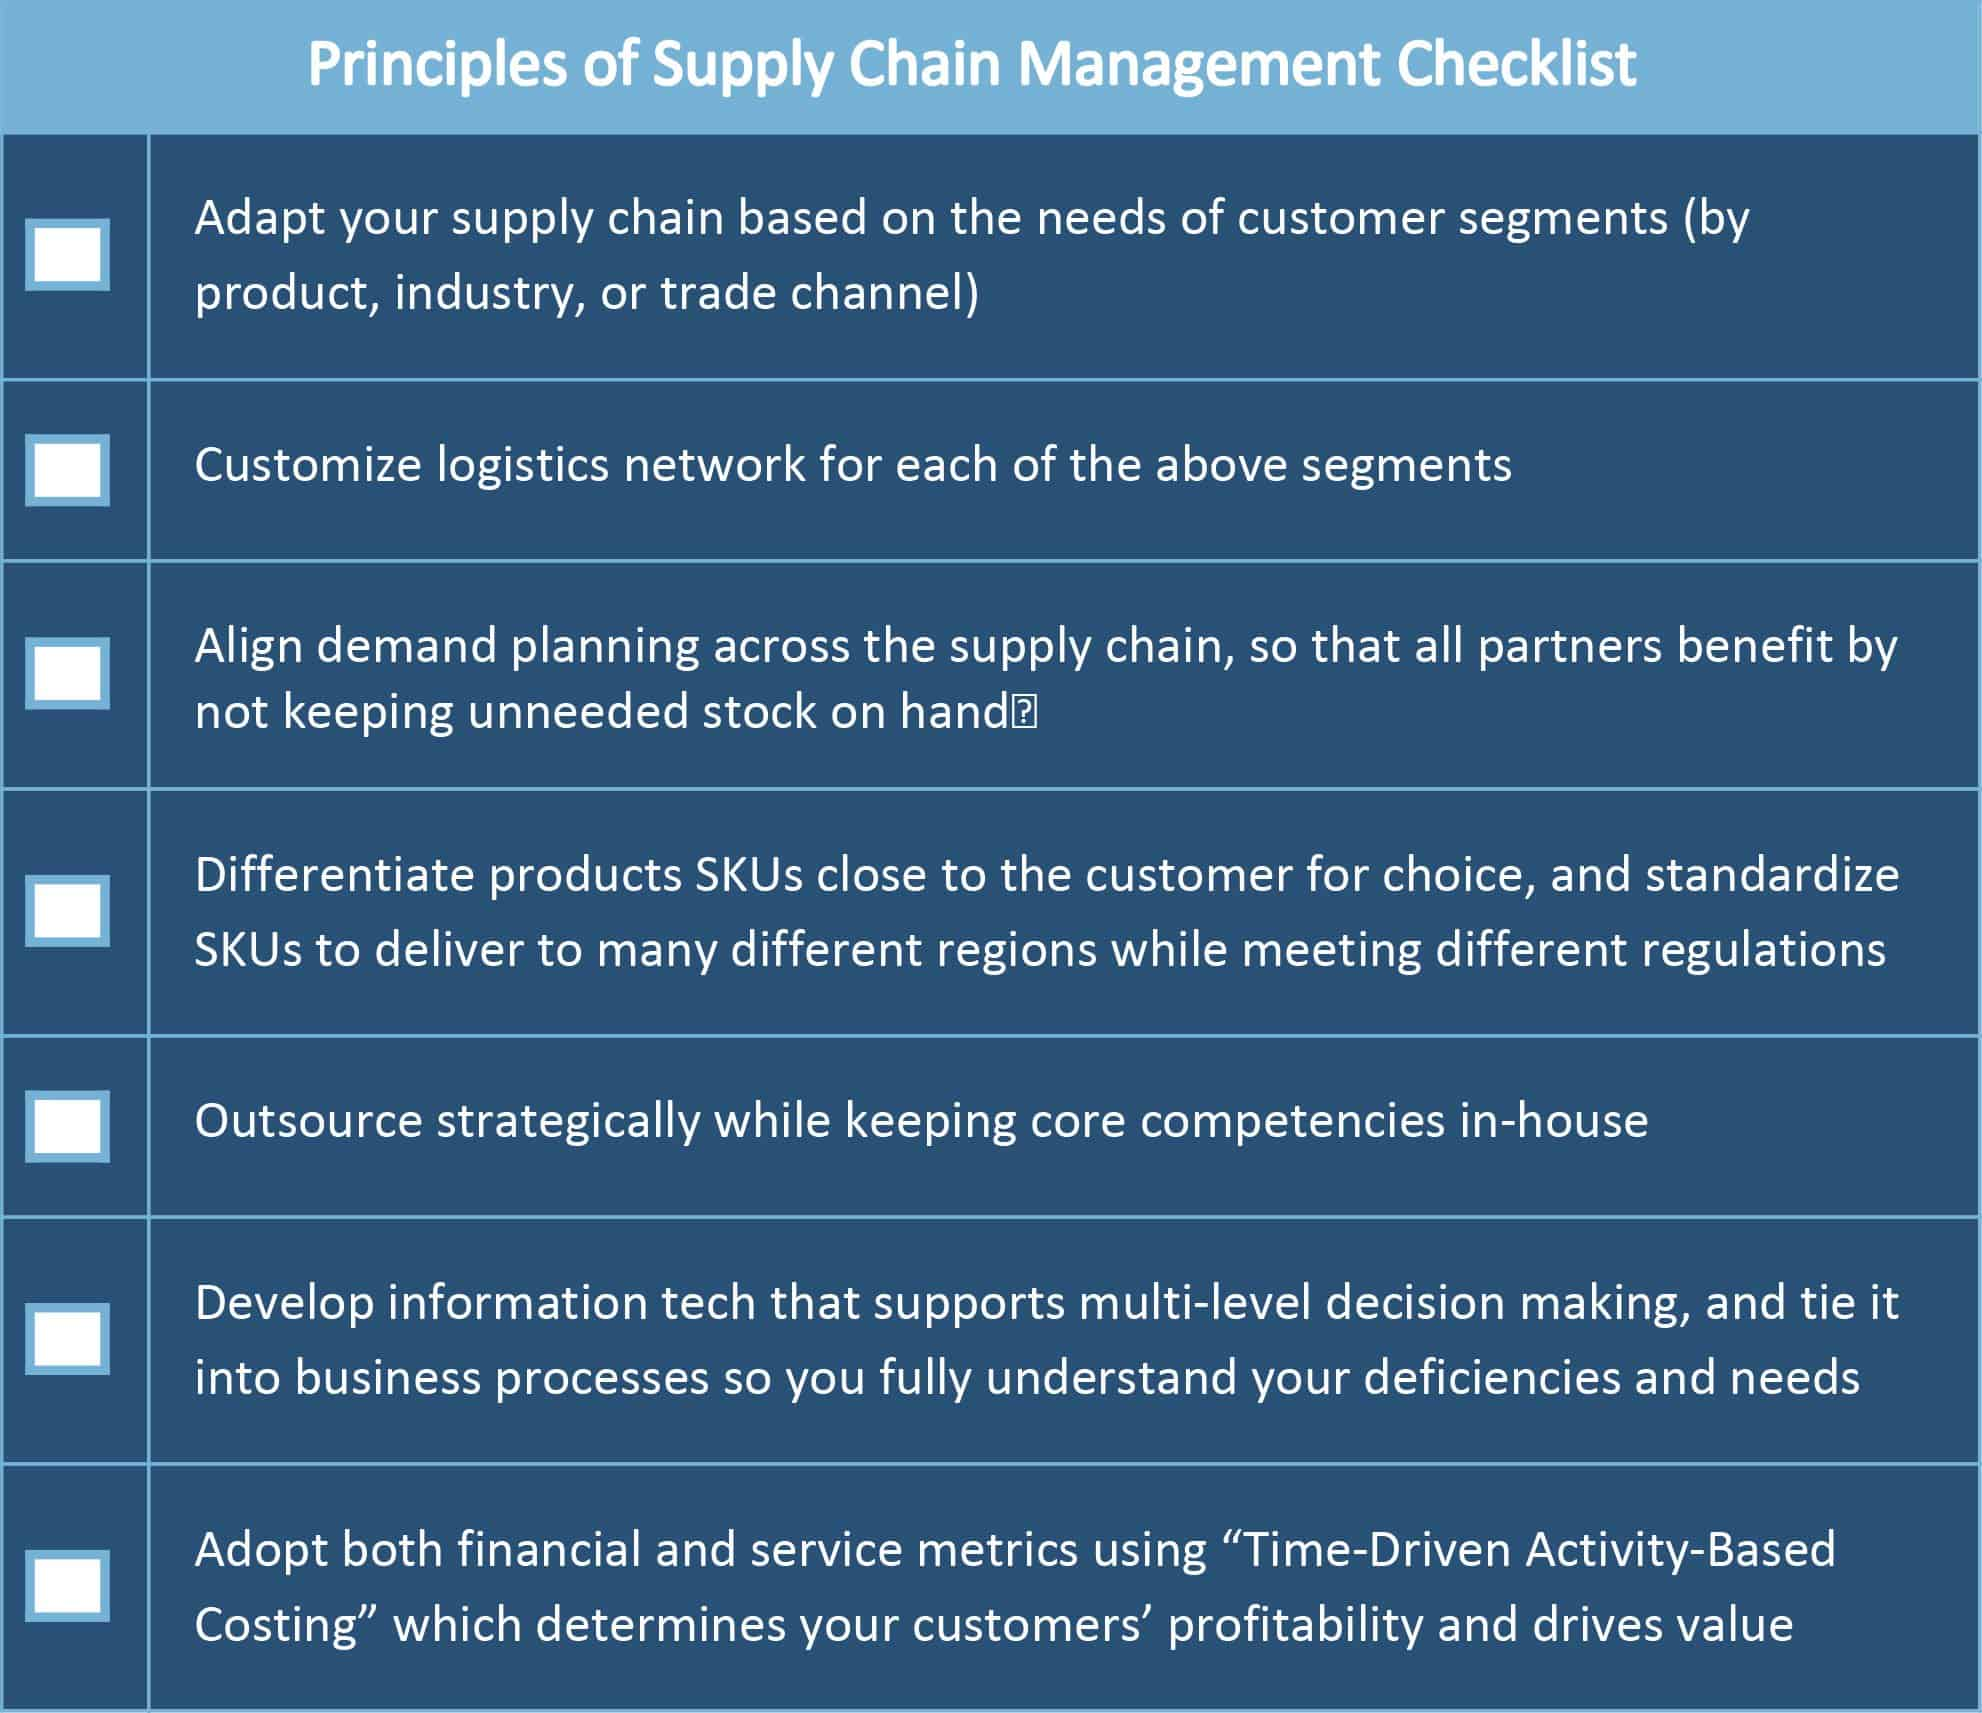 hight resolution of ic principles of supply chain management checklist jpg